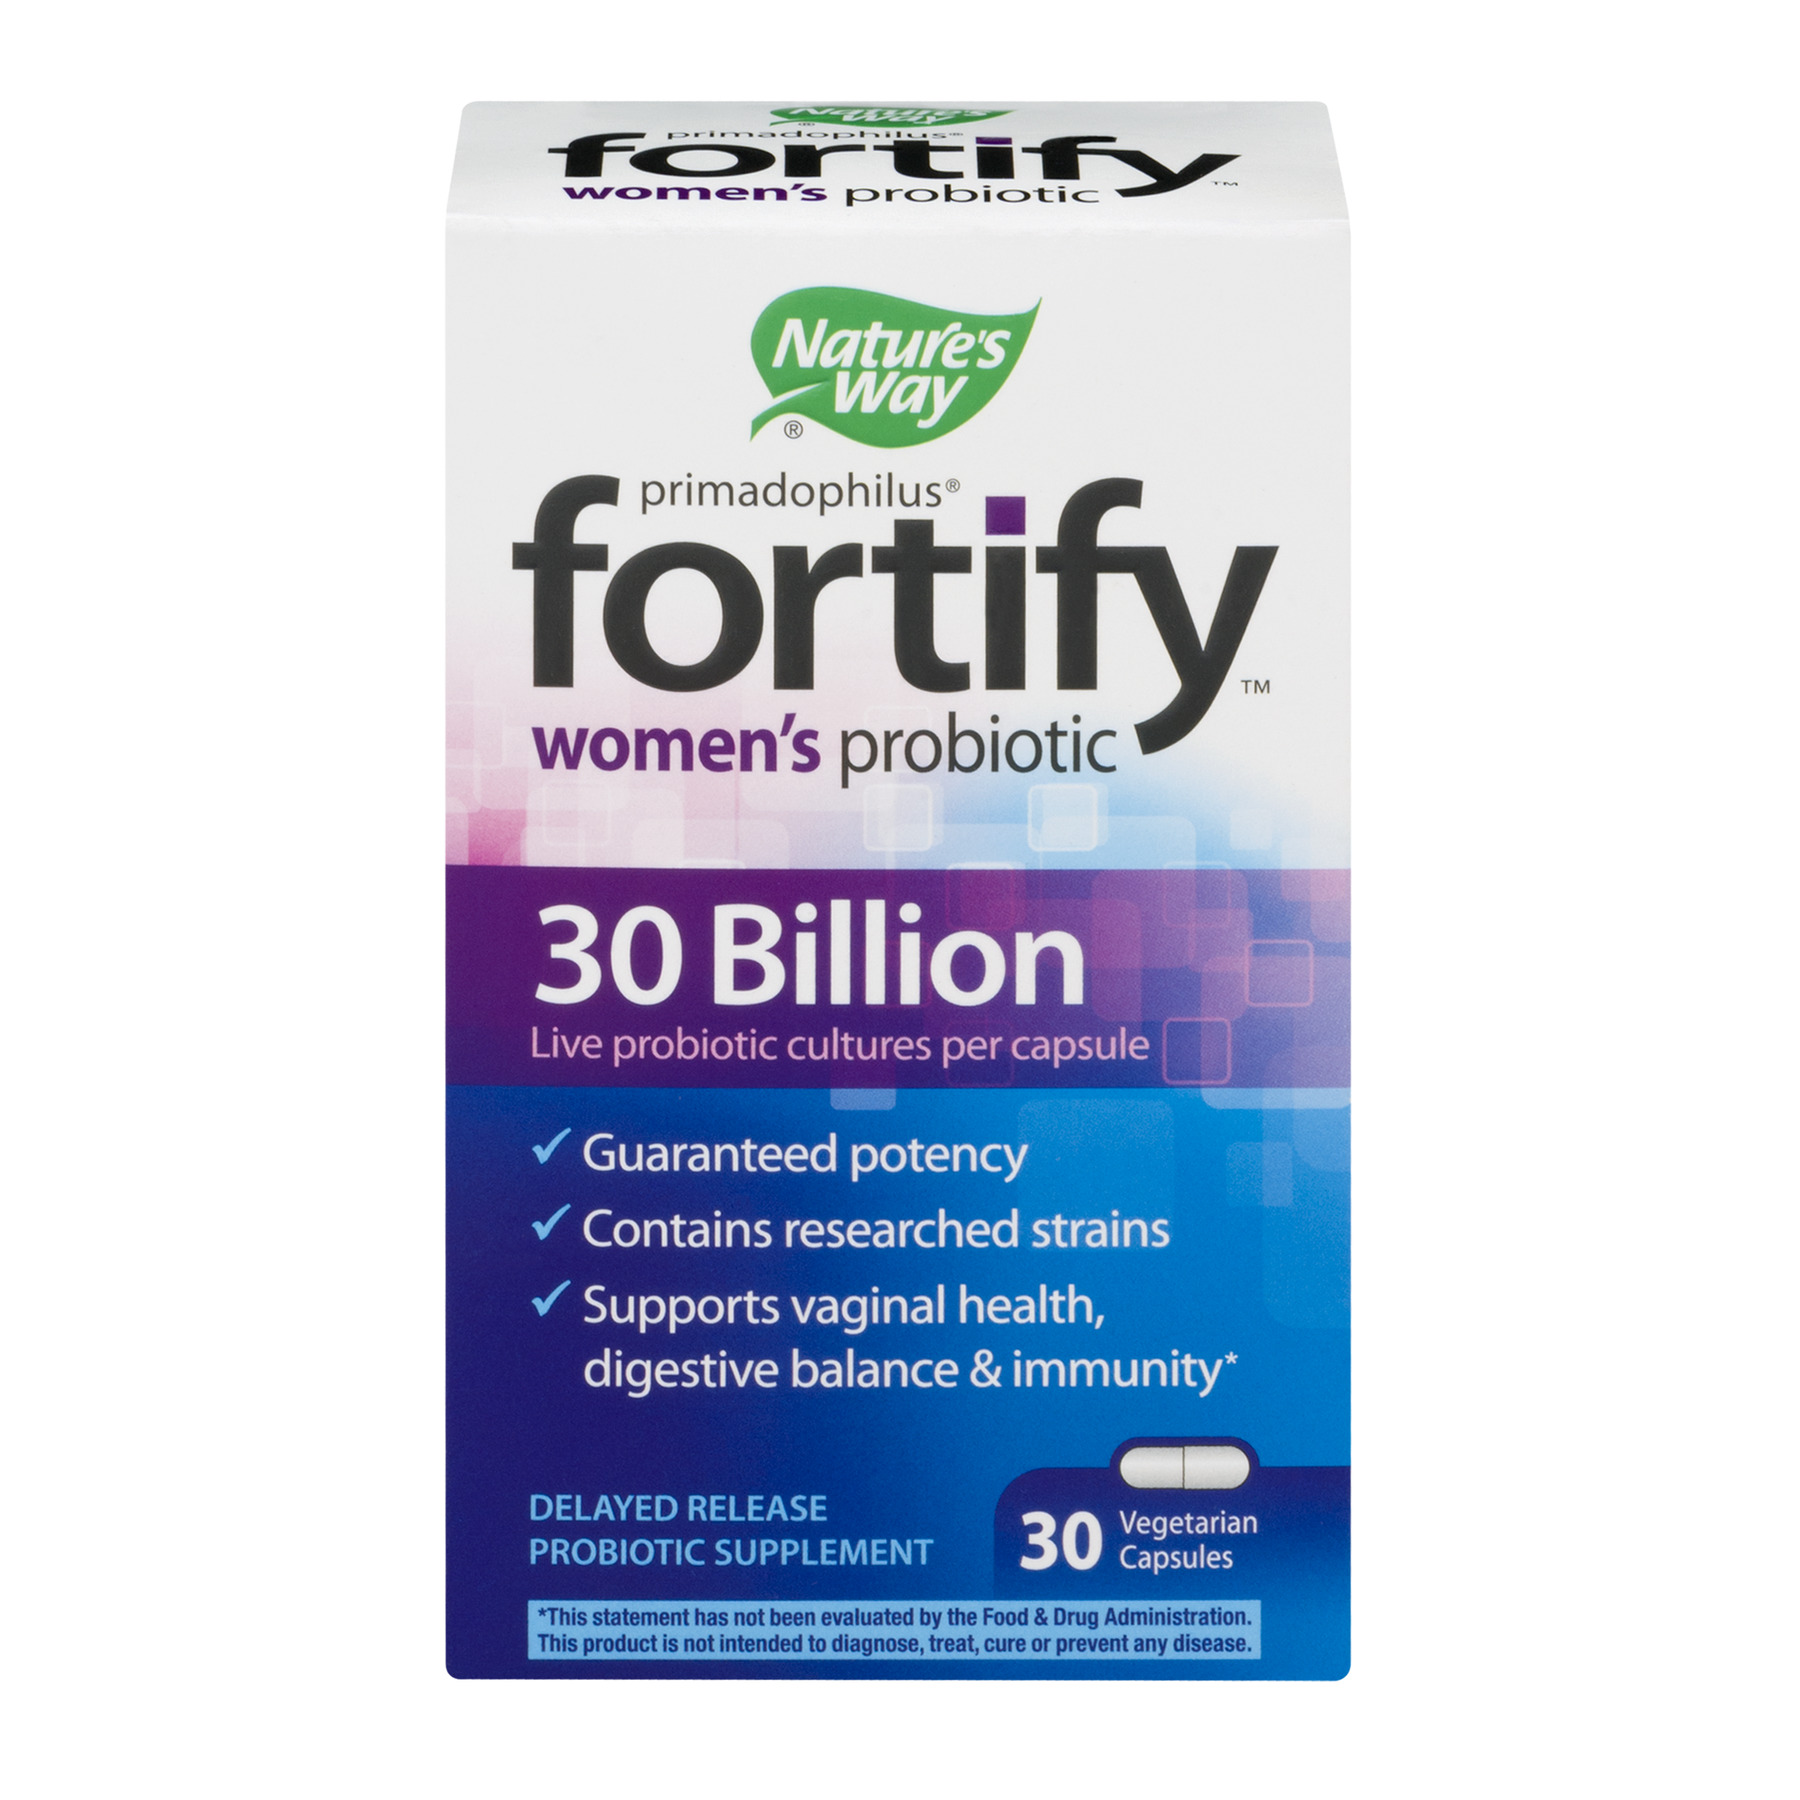 Nature's Way Fortify Primadophilus Women's Probiotic, 30 Ct.